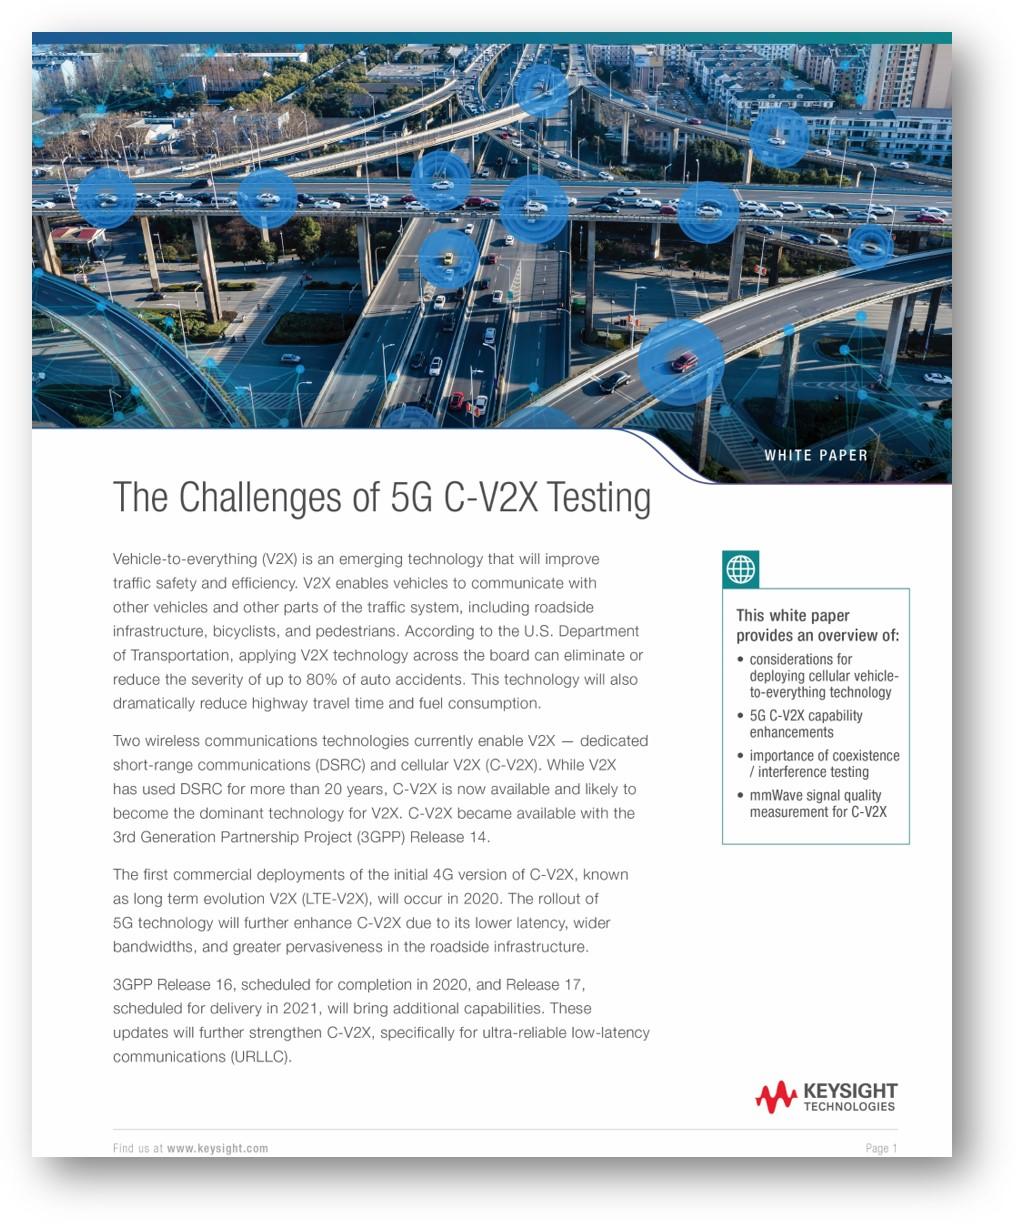 The Challenges of 5G C-V2X Testing white paper